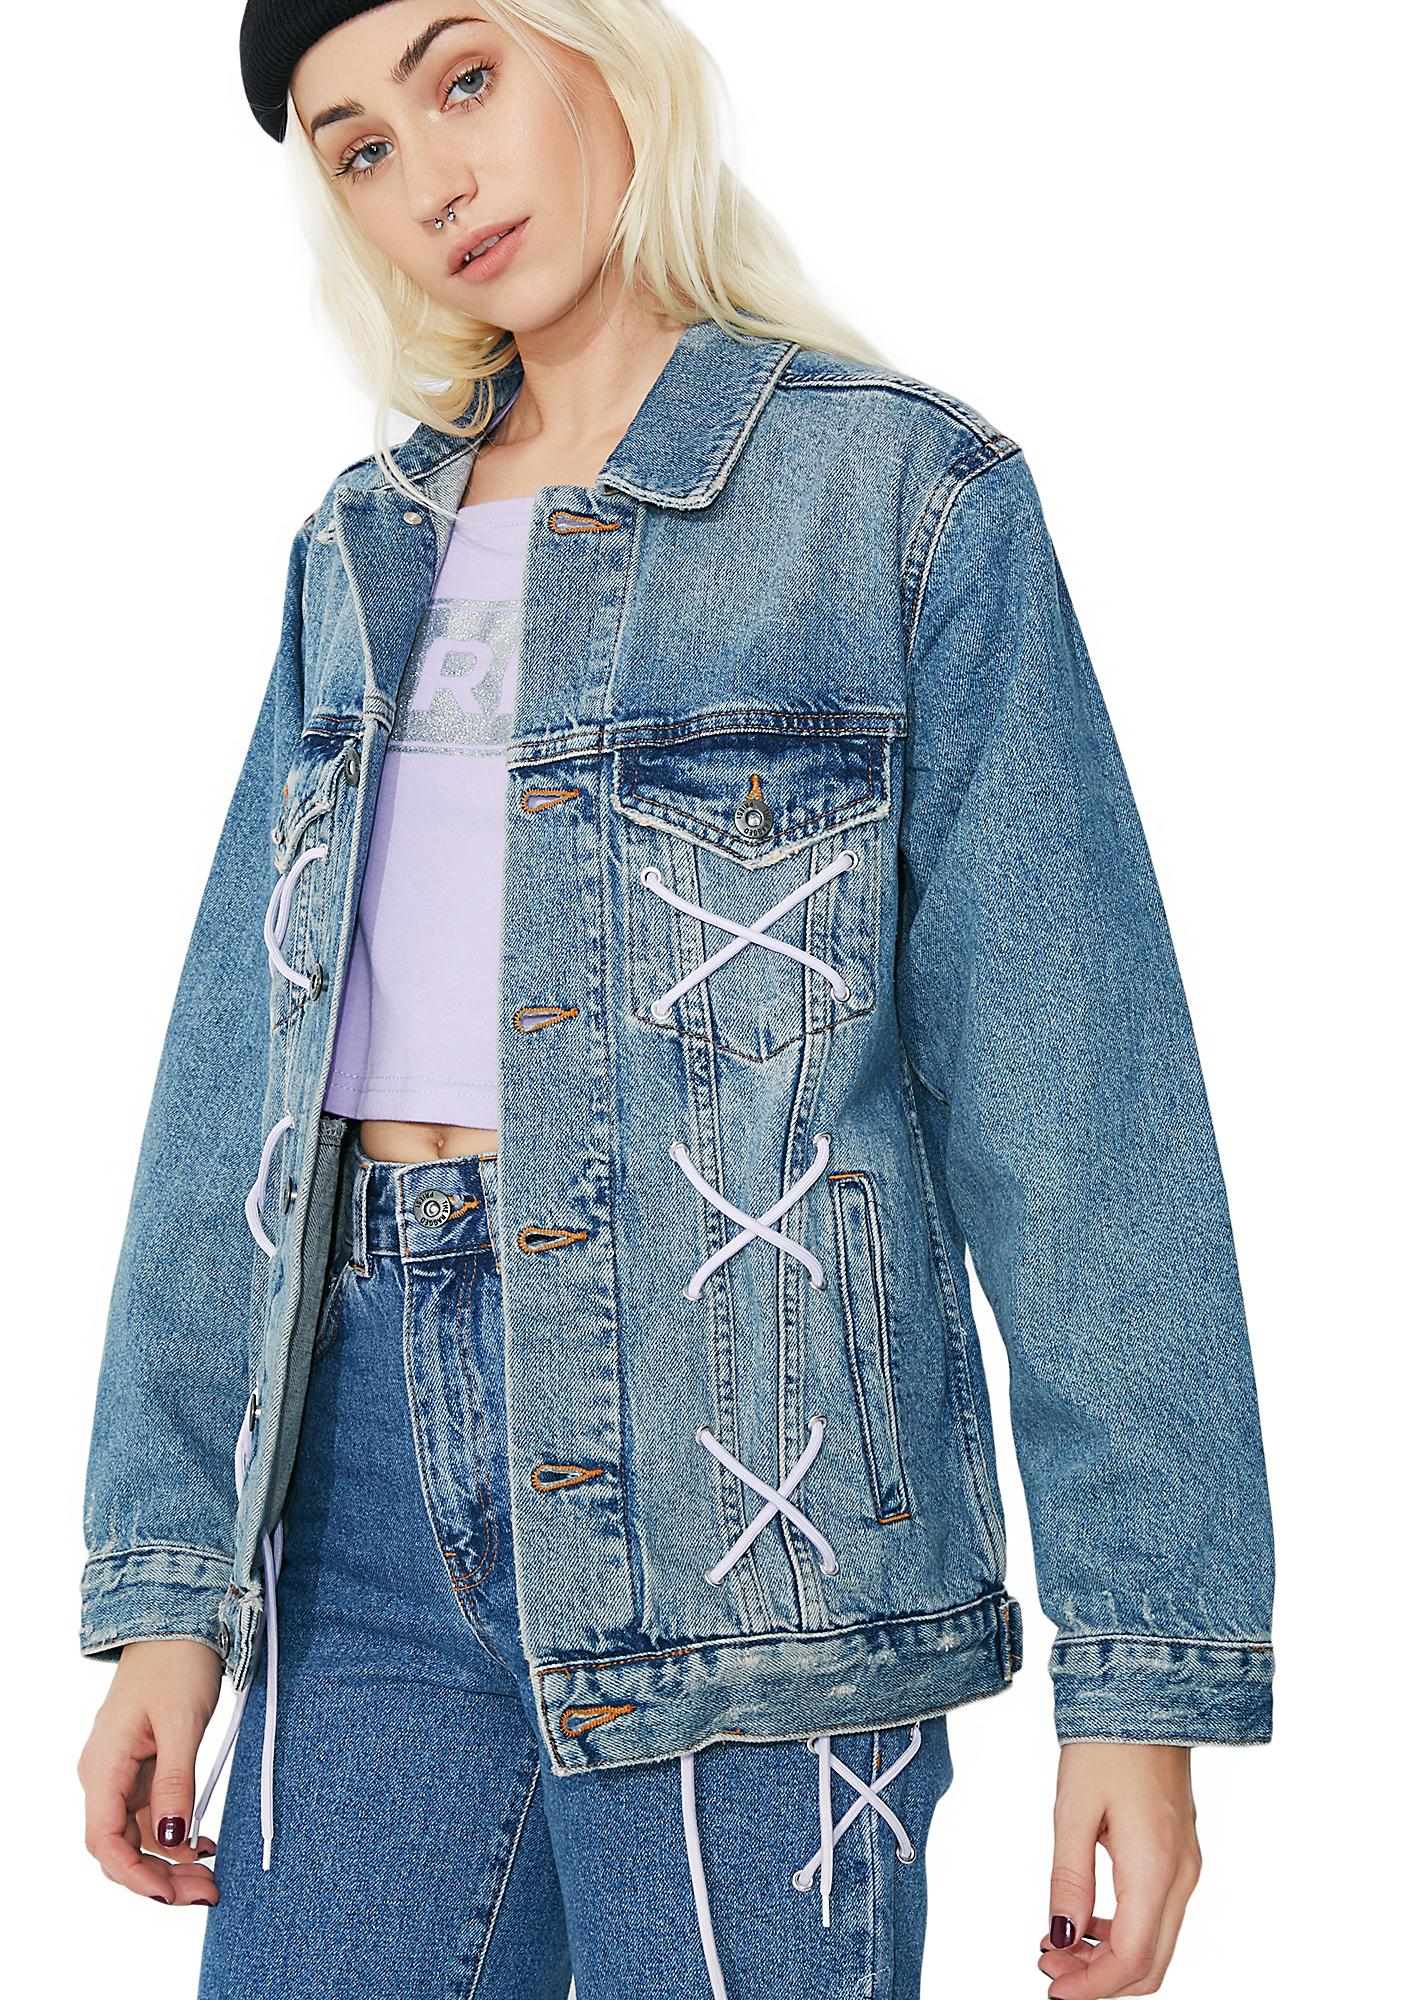 The Ragged Priest Exile Denim Jacket